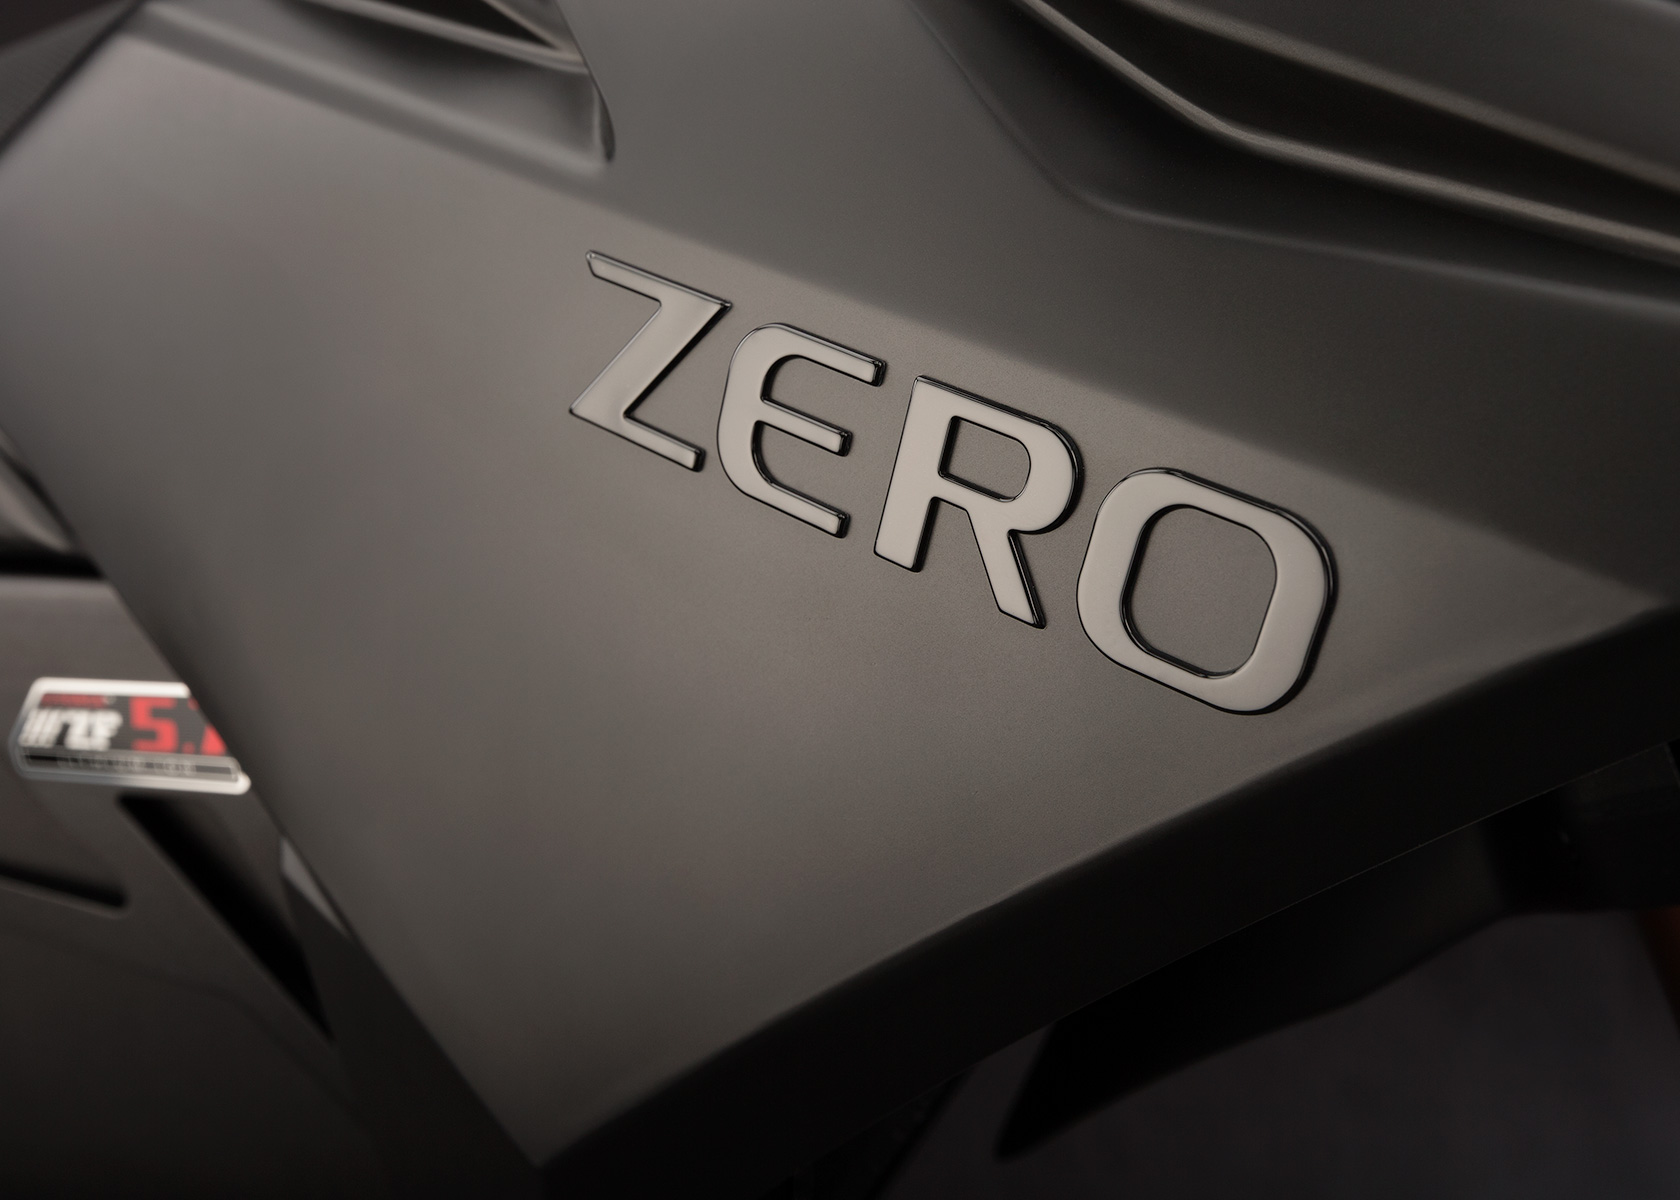 '.2013 Zero FX Electric Motorcycle: Tank.'